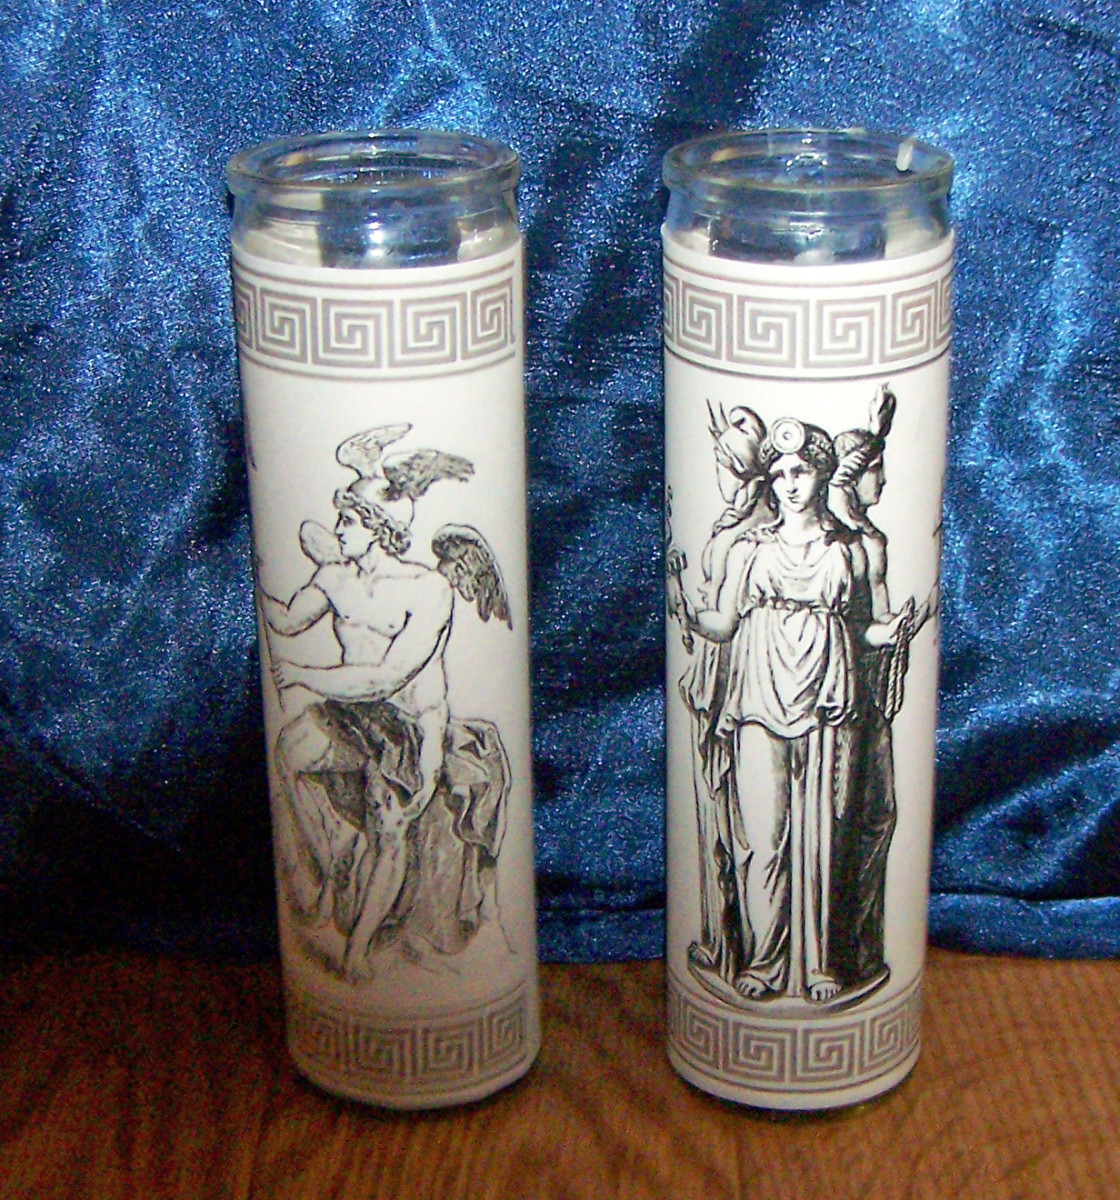 Resize an image of your deity, print it, and glue or tape it around the glass casing of a pillar candle. Affordable and effective. I use these on my ritual altar during worship.